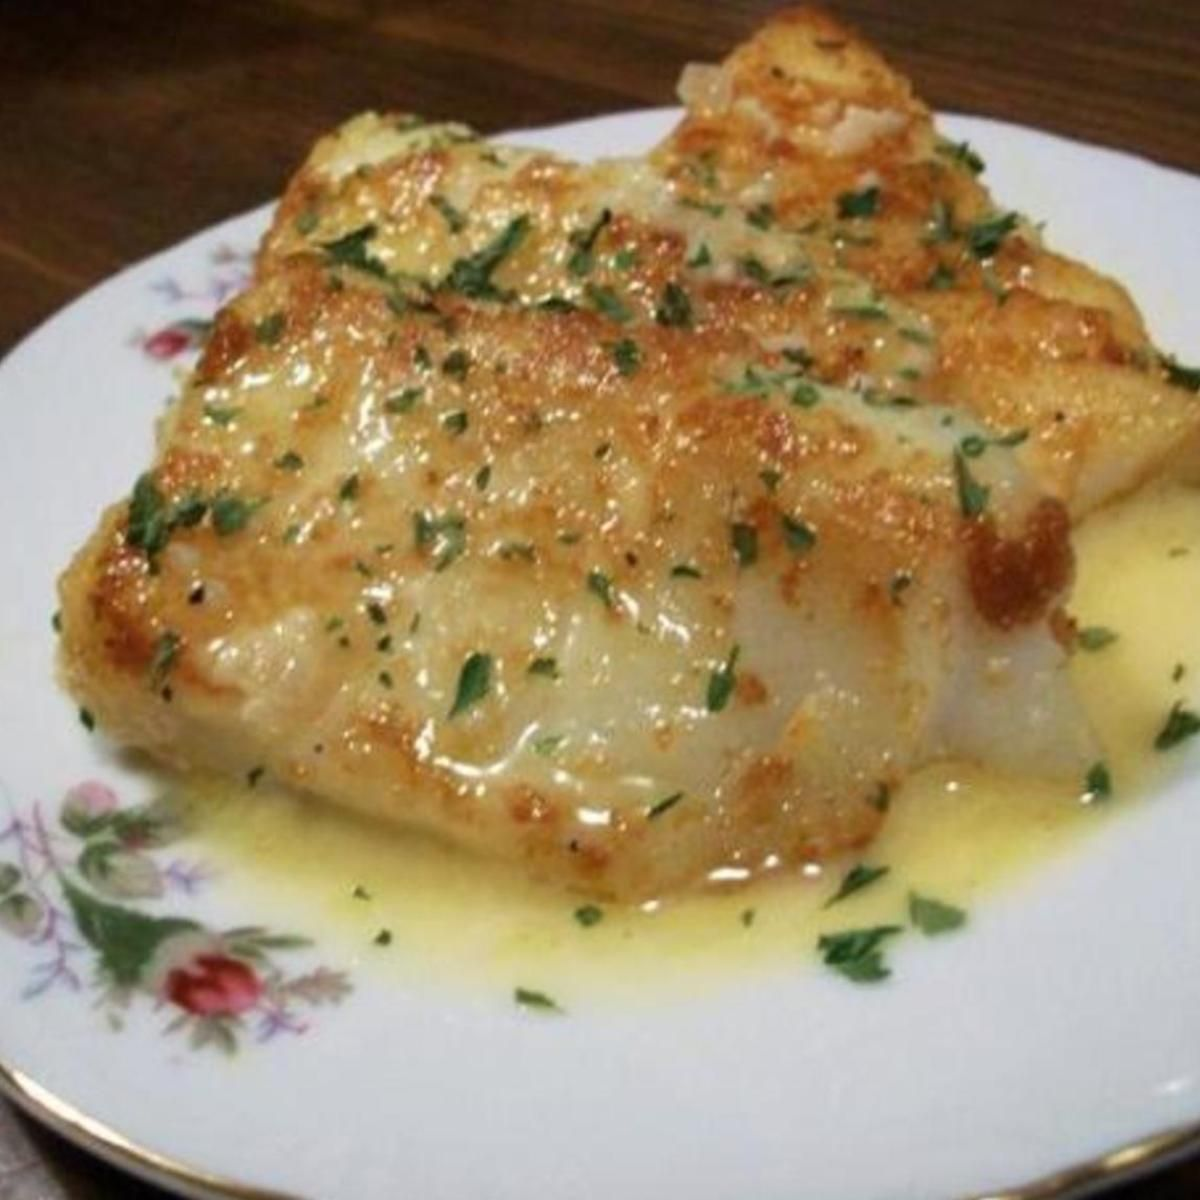 Baked cod recipe with lemon butter recipe baked cod for Tasty fish recipes